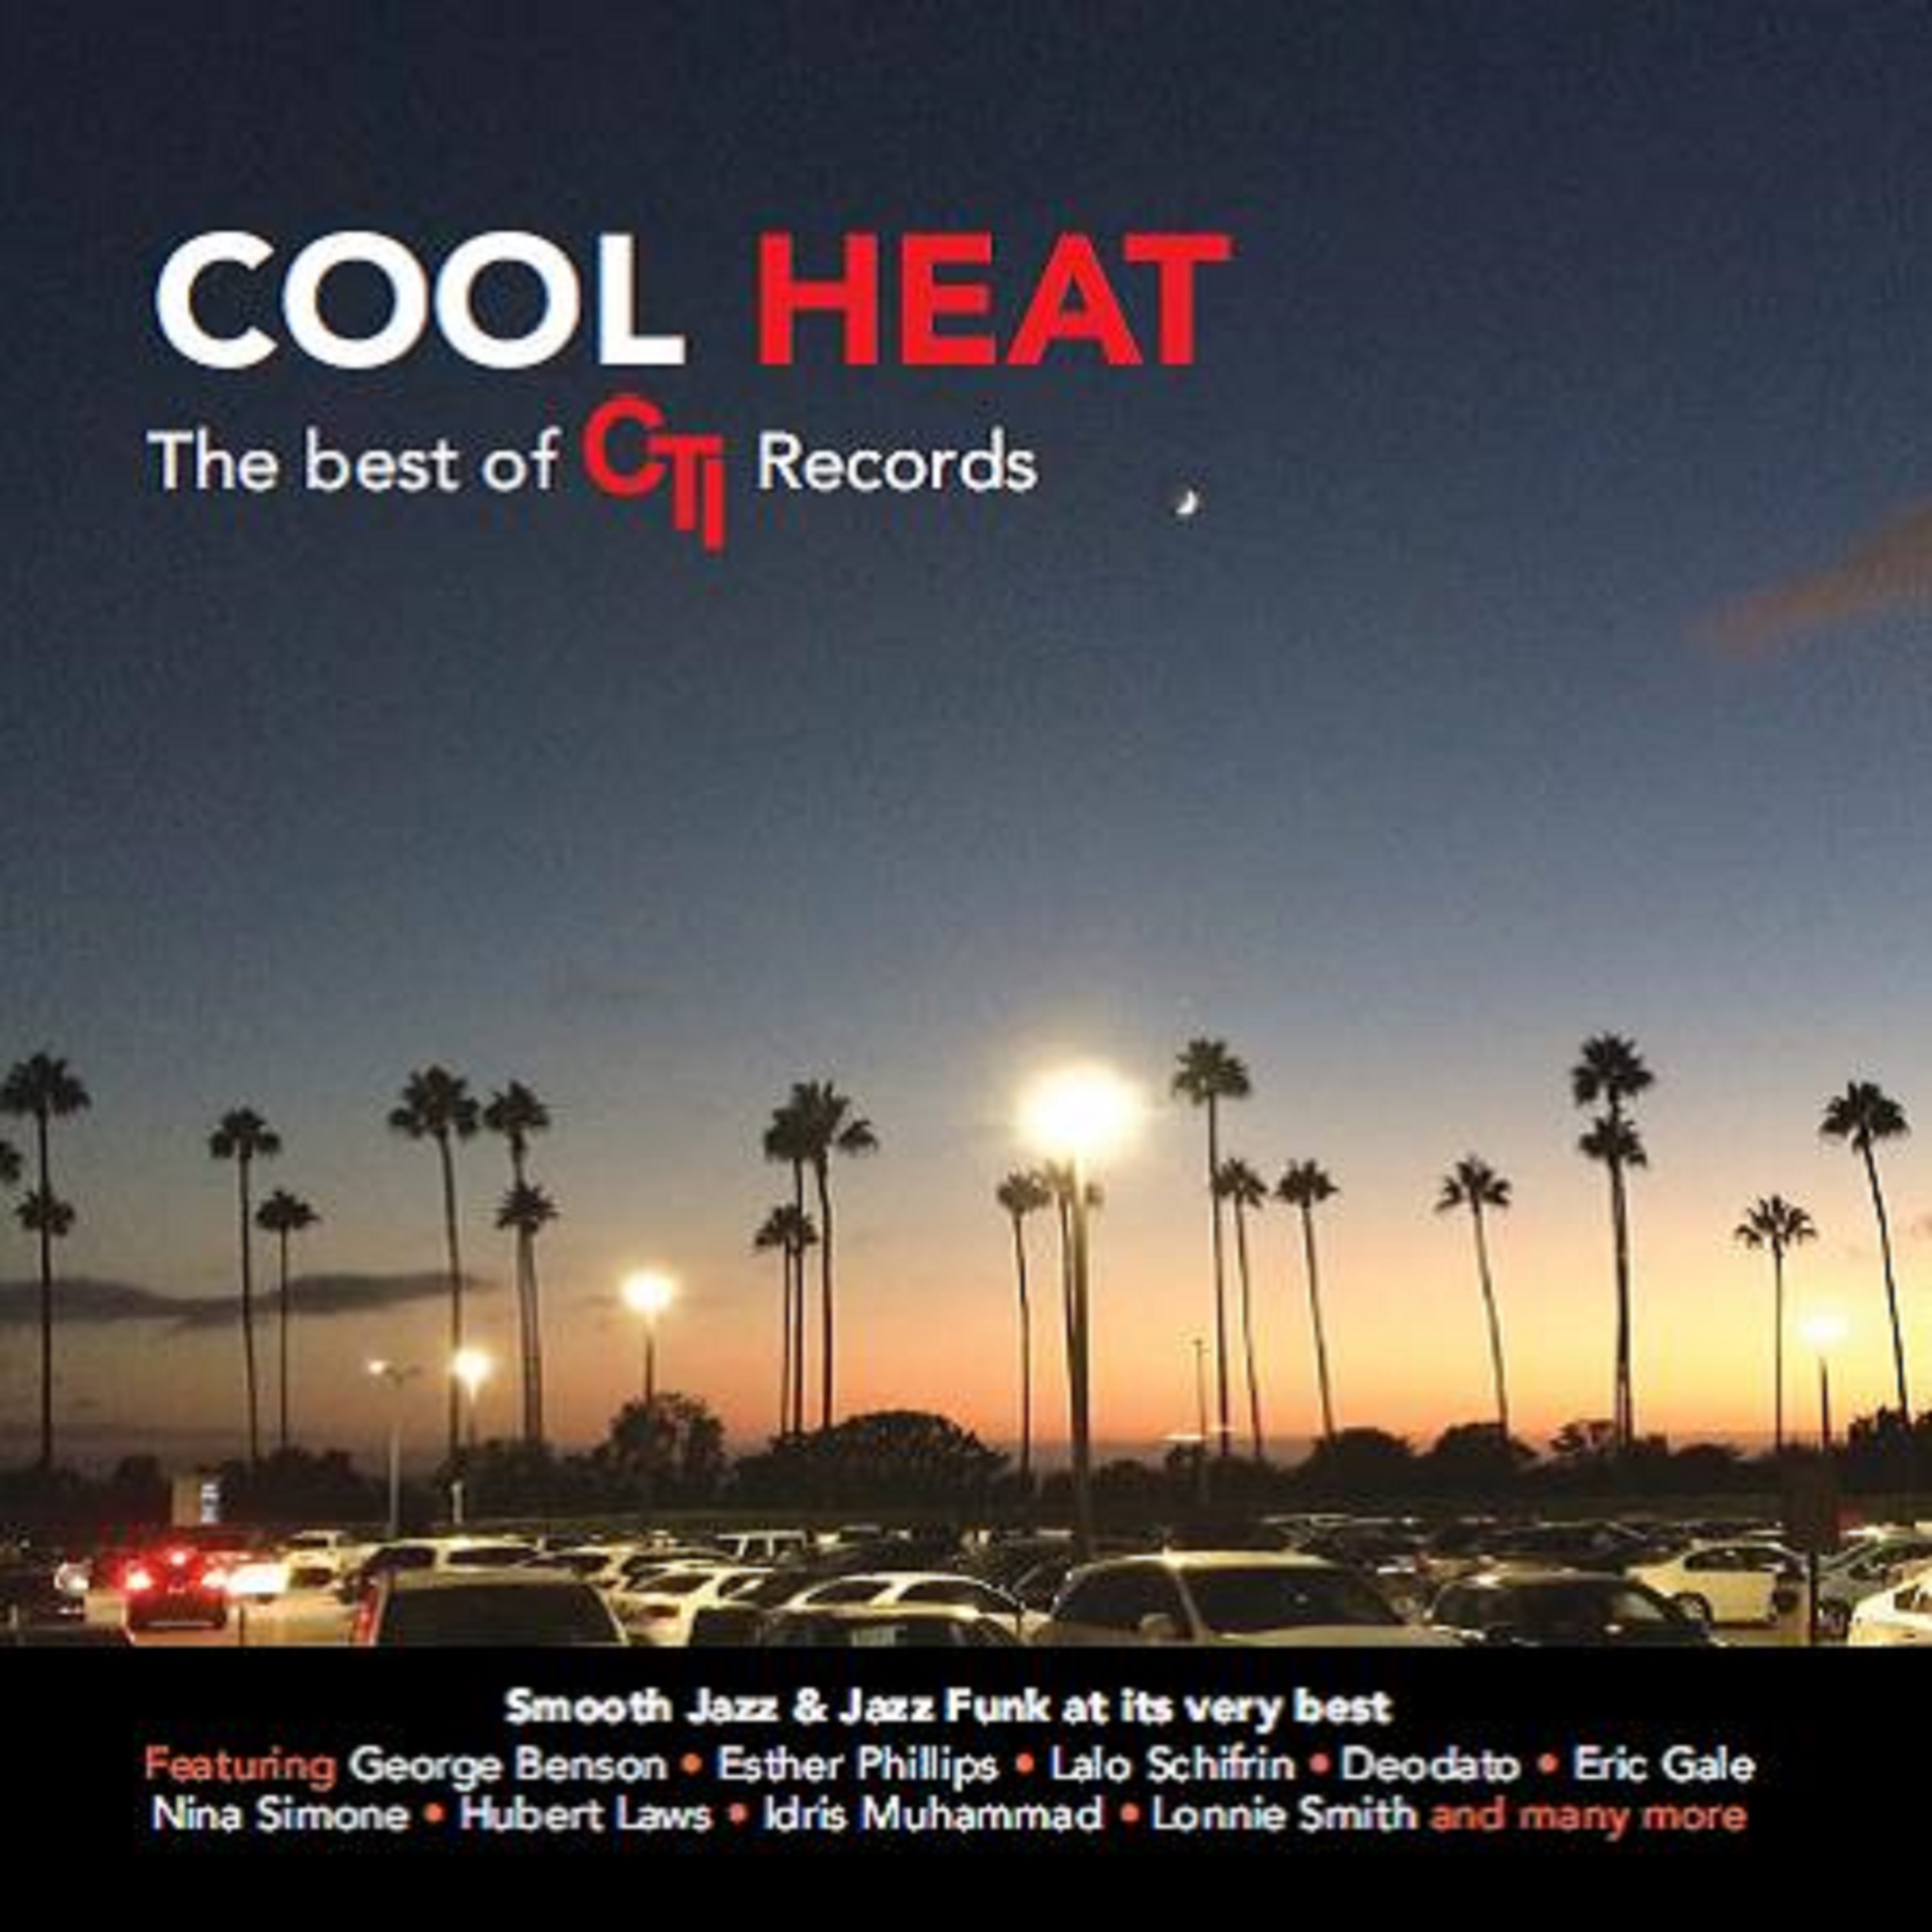 COOL-HEAT-CTI-RECORDS